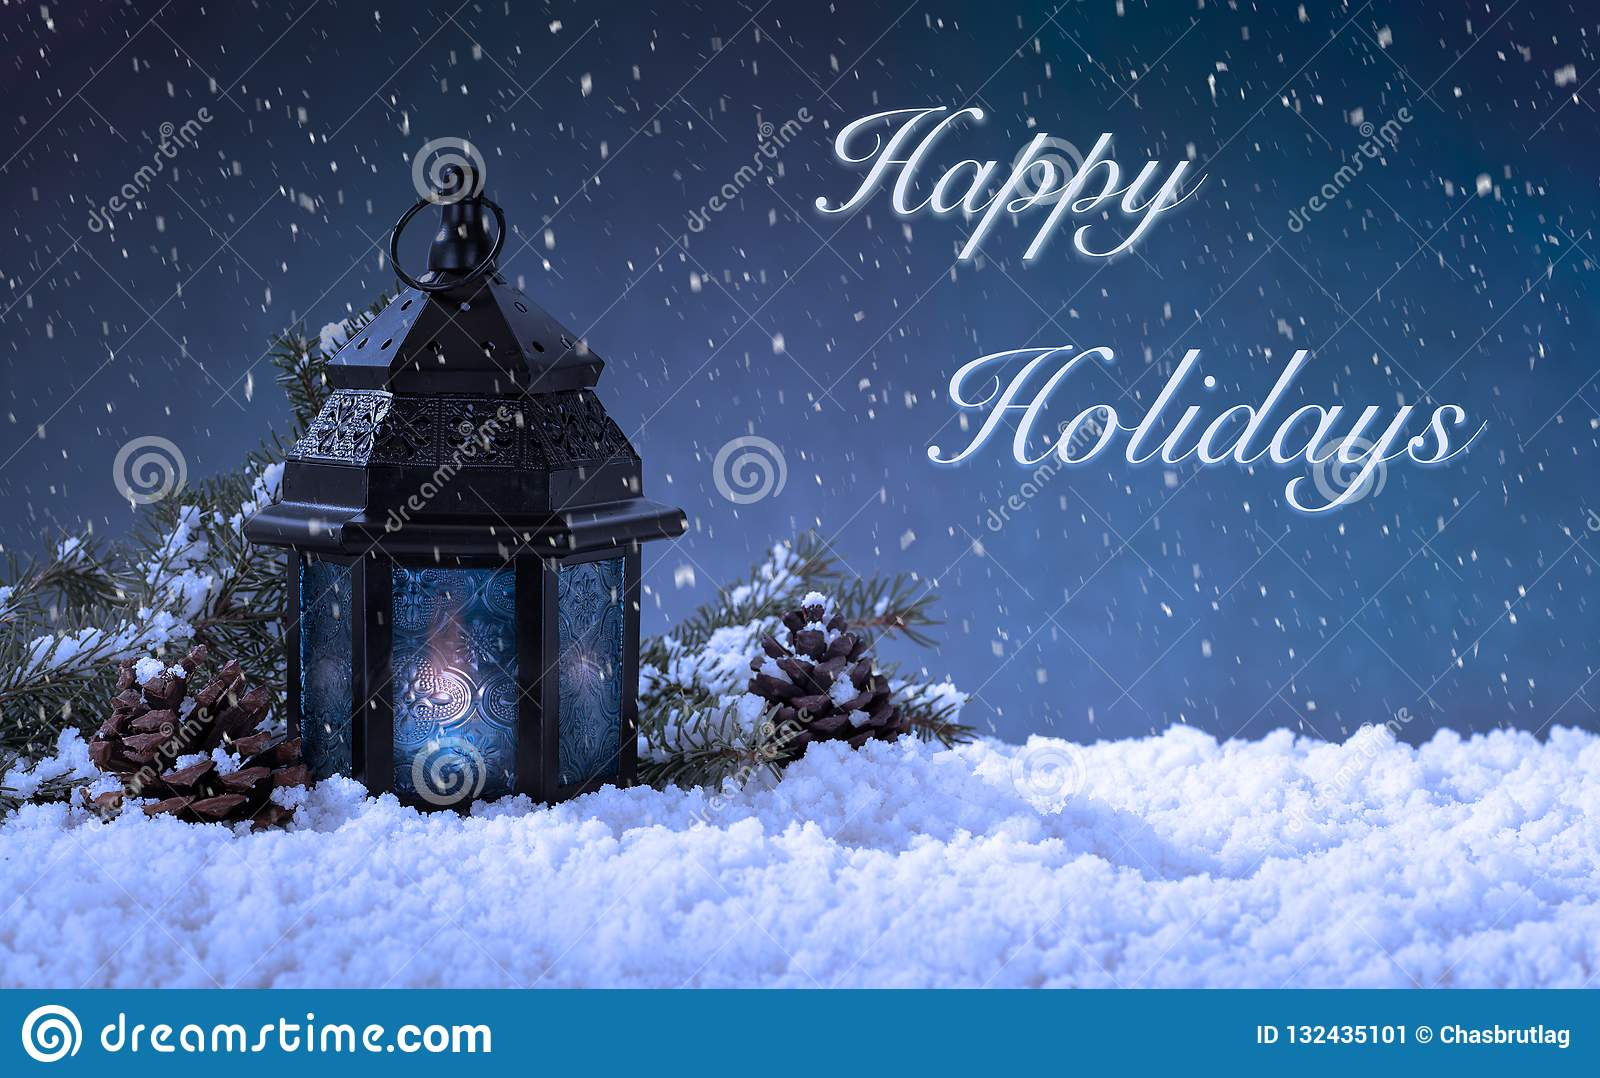 Christmas Scene With Happy Holidays Text